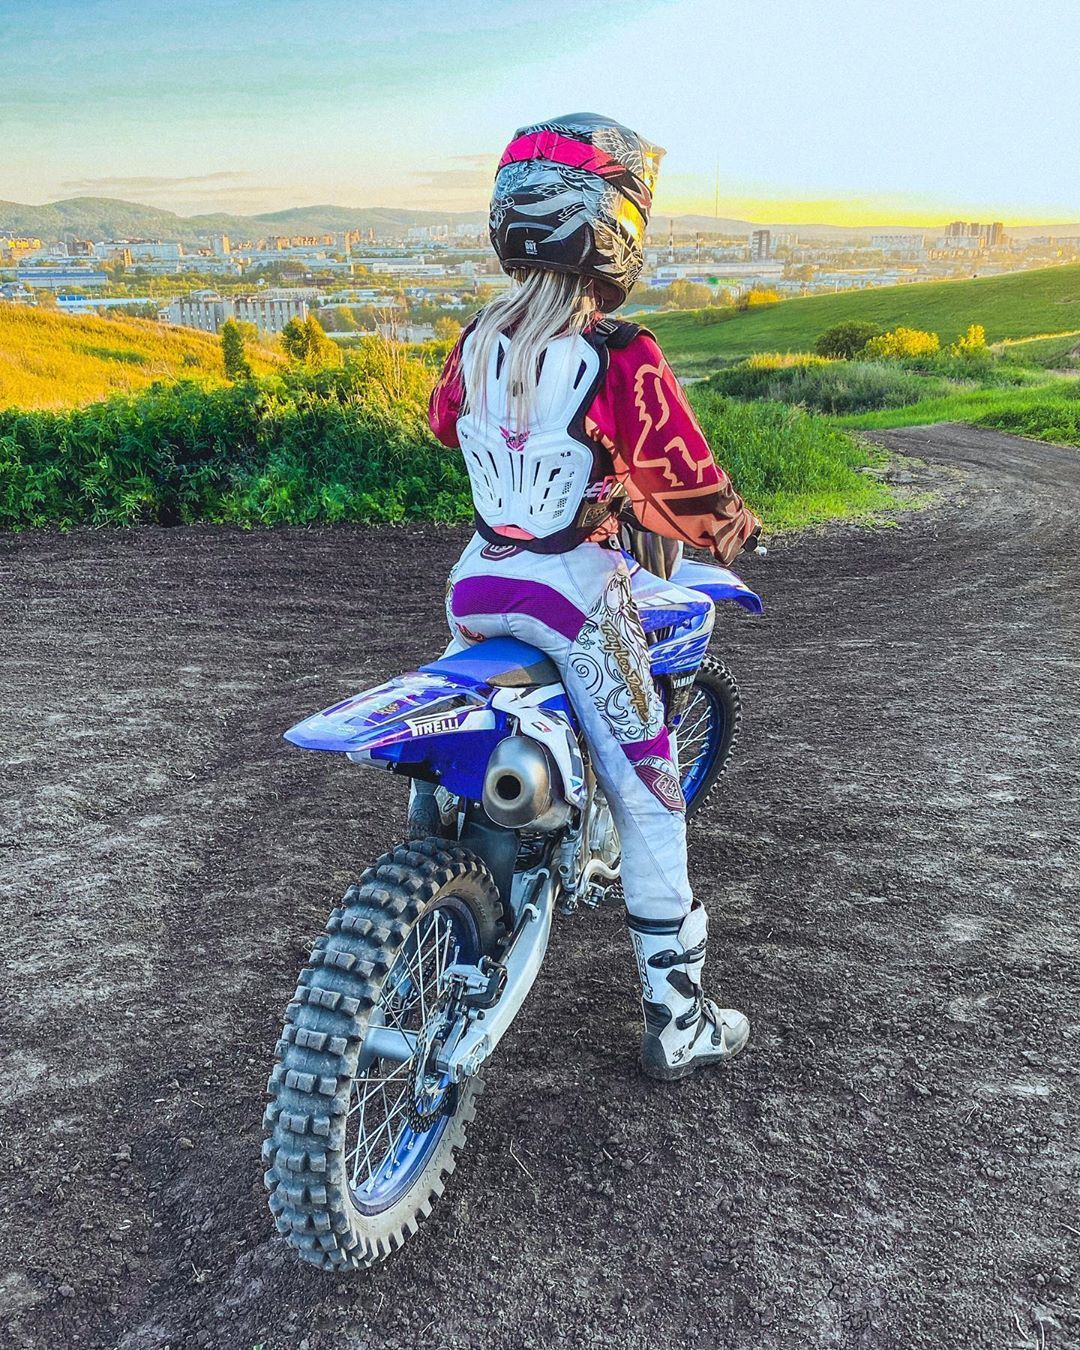 Girl Dirtbike Jump in Australia in 2020 Dirt bike girl